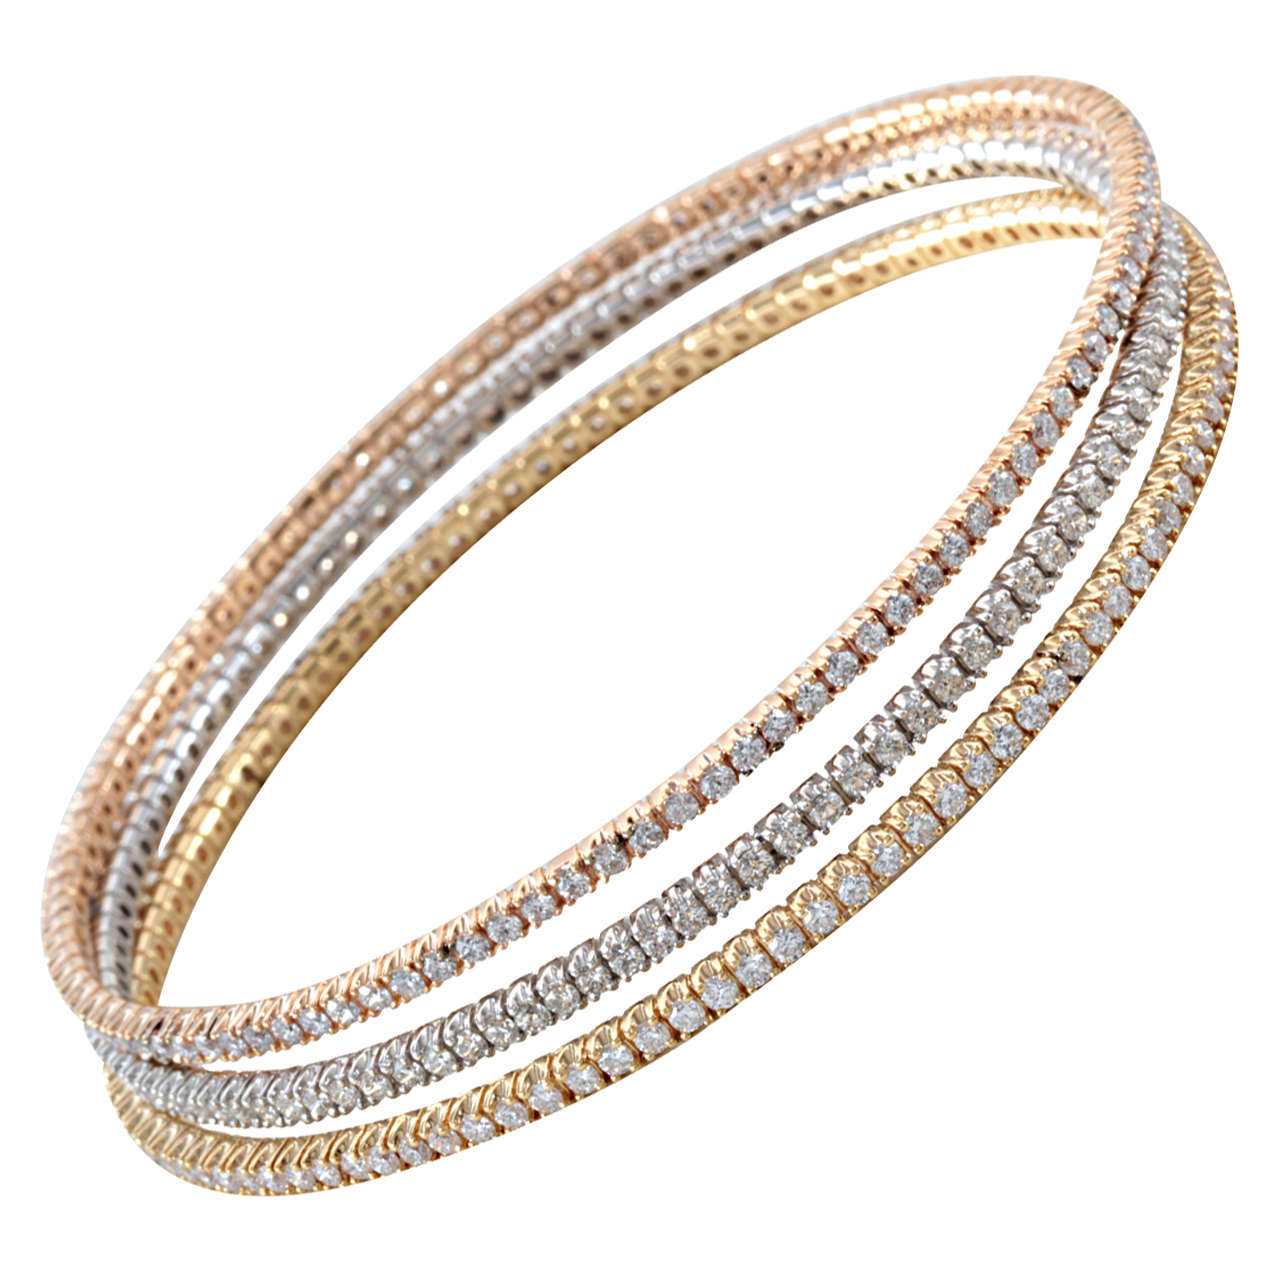 c gold s karat danutas white diamond celtic bangles bangle bracelet products danuta